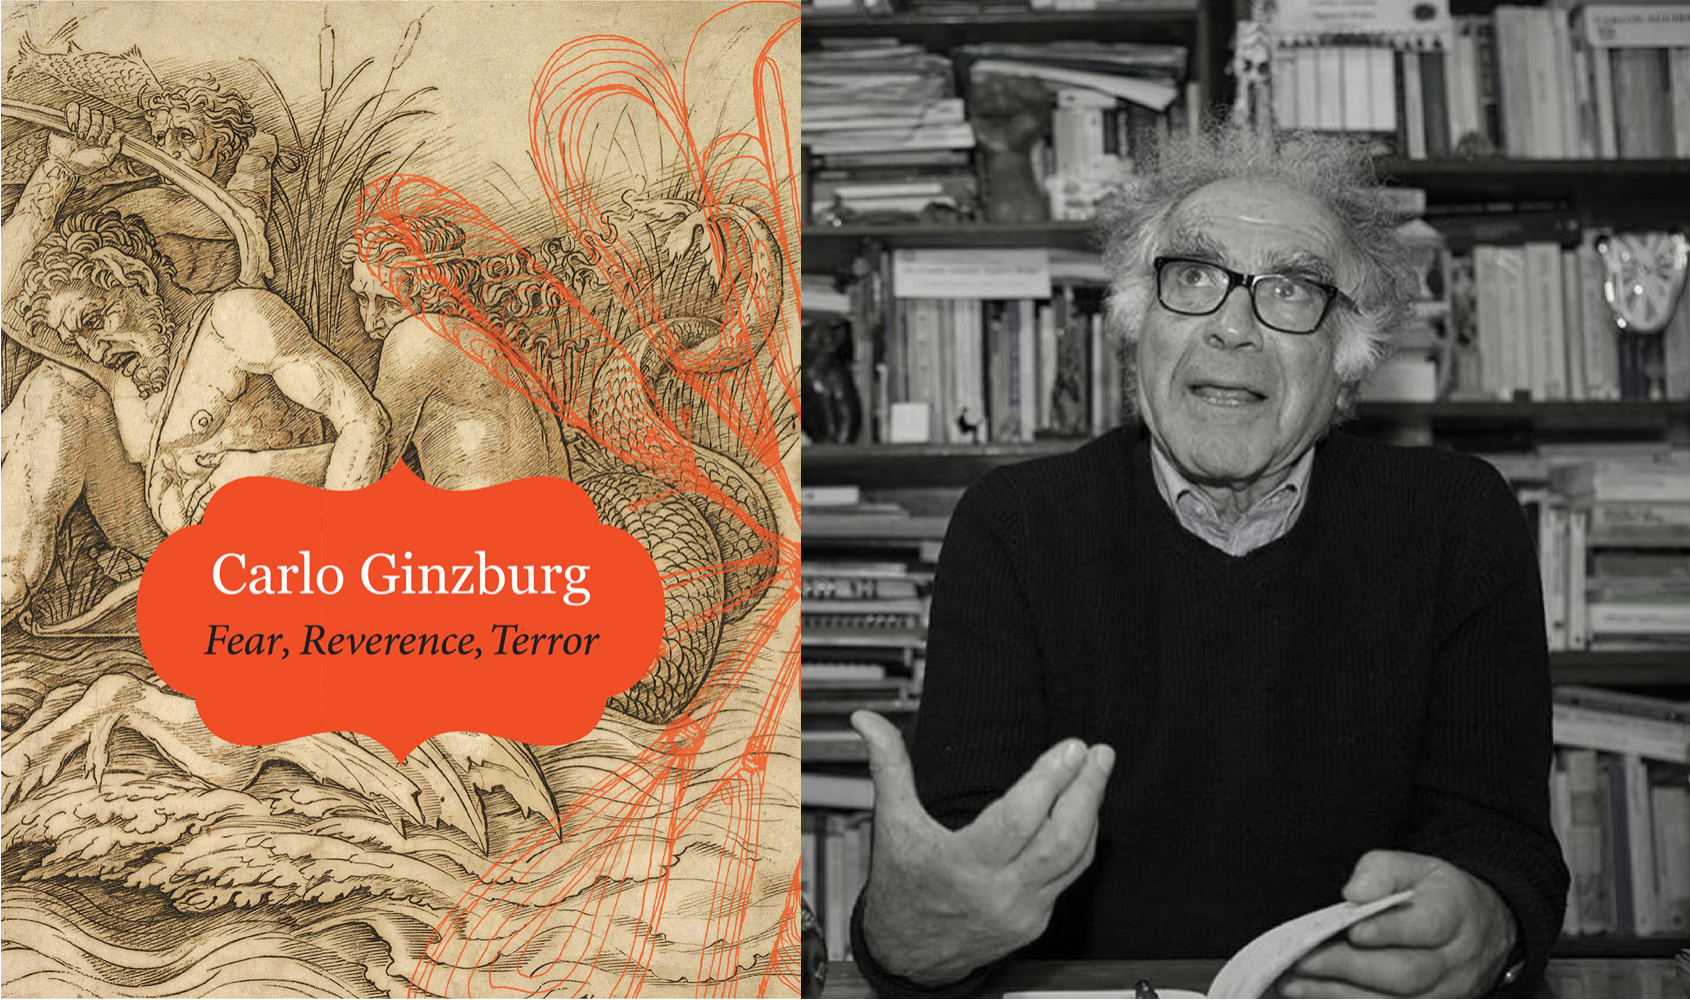 On the left, book cover of Fear, Reverence, Terror by Carlo Ginzburg. On the right, a photograph of Carlo Ginzburg.